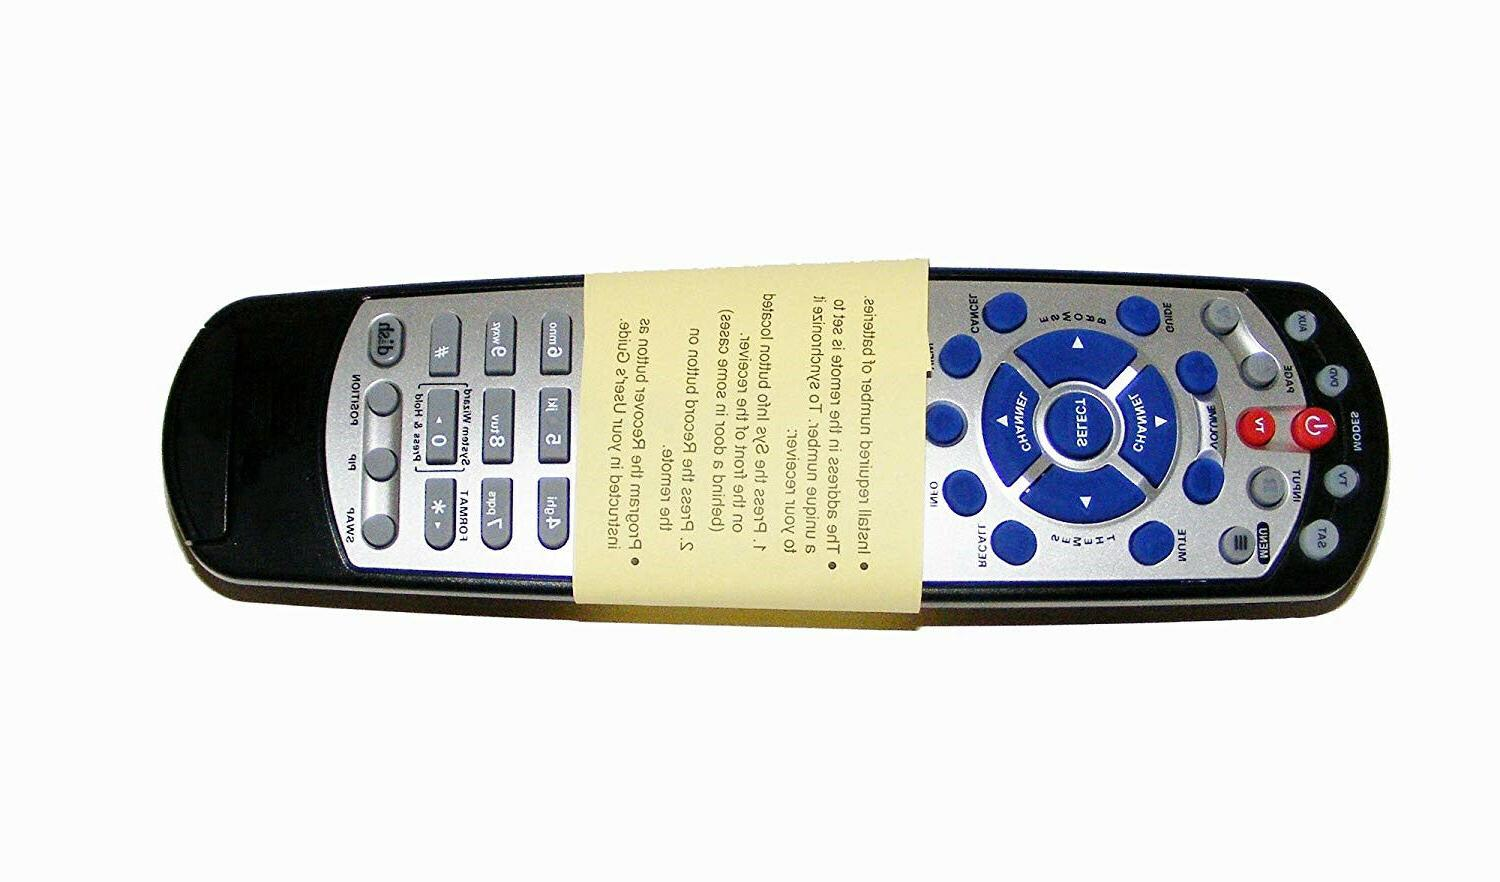 New Replacement Remote for Dish ExpressVU